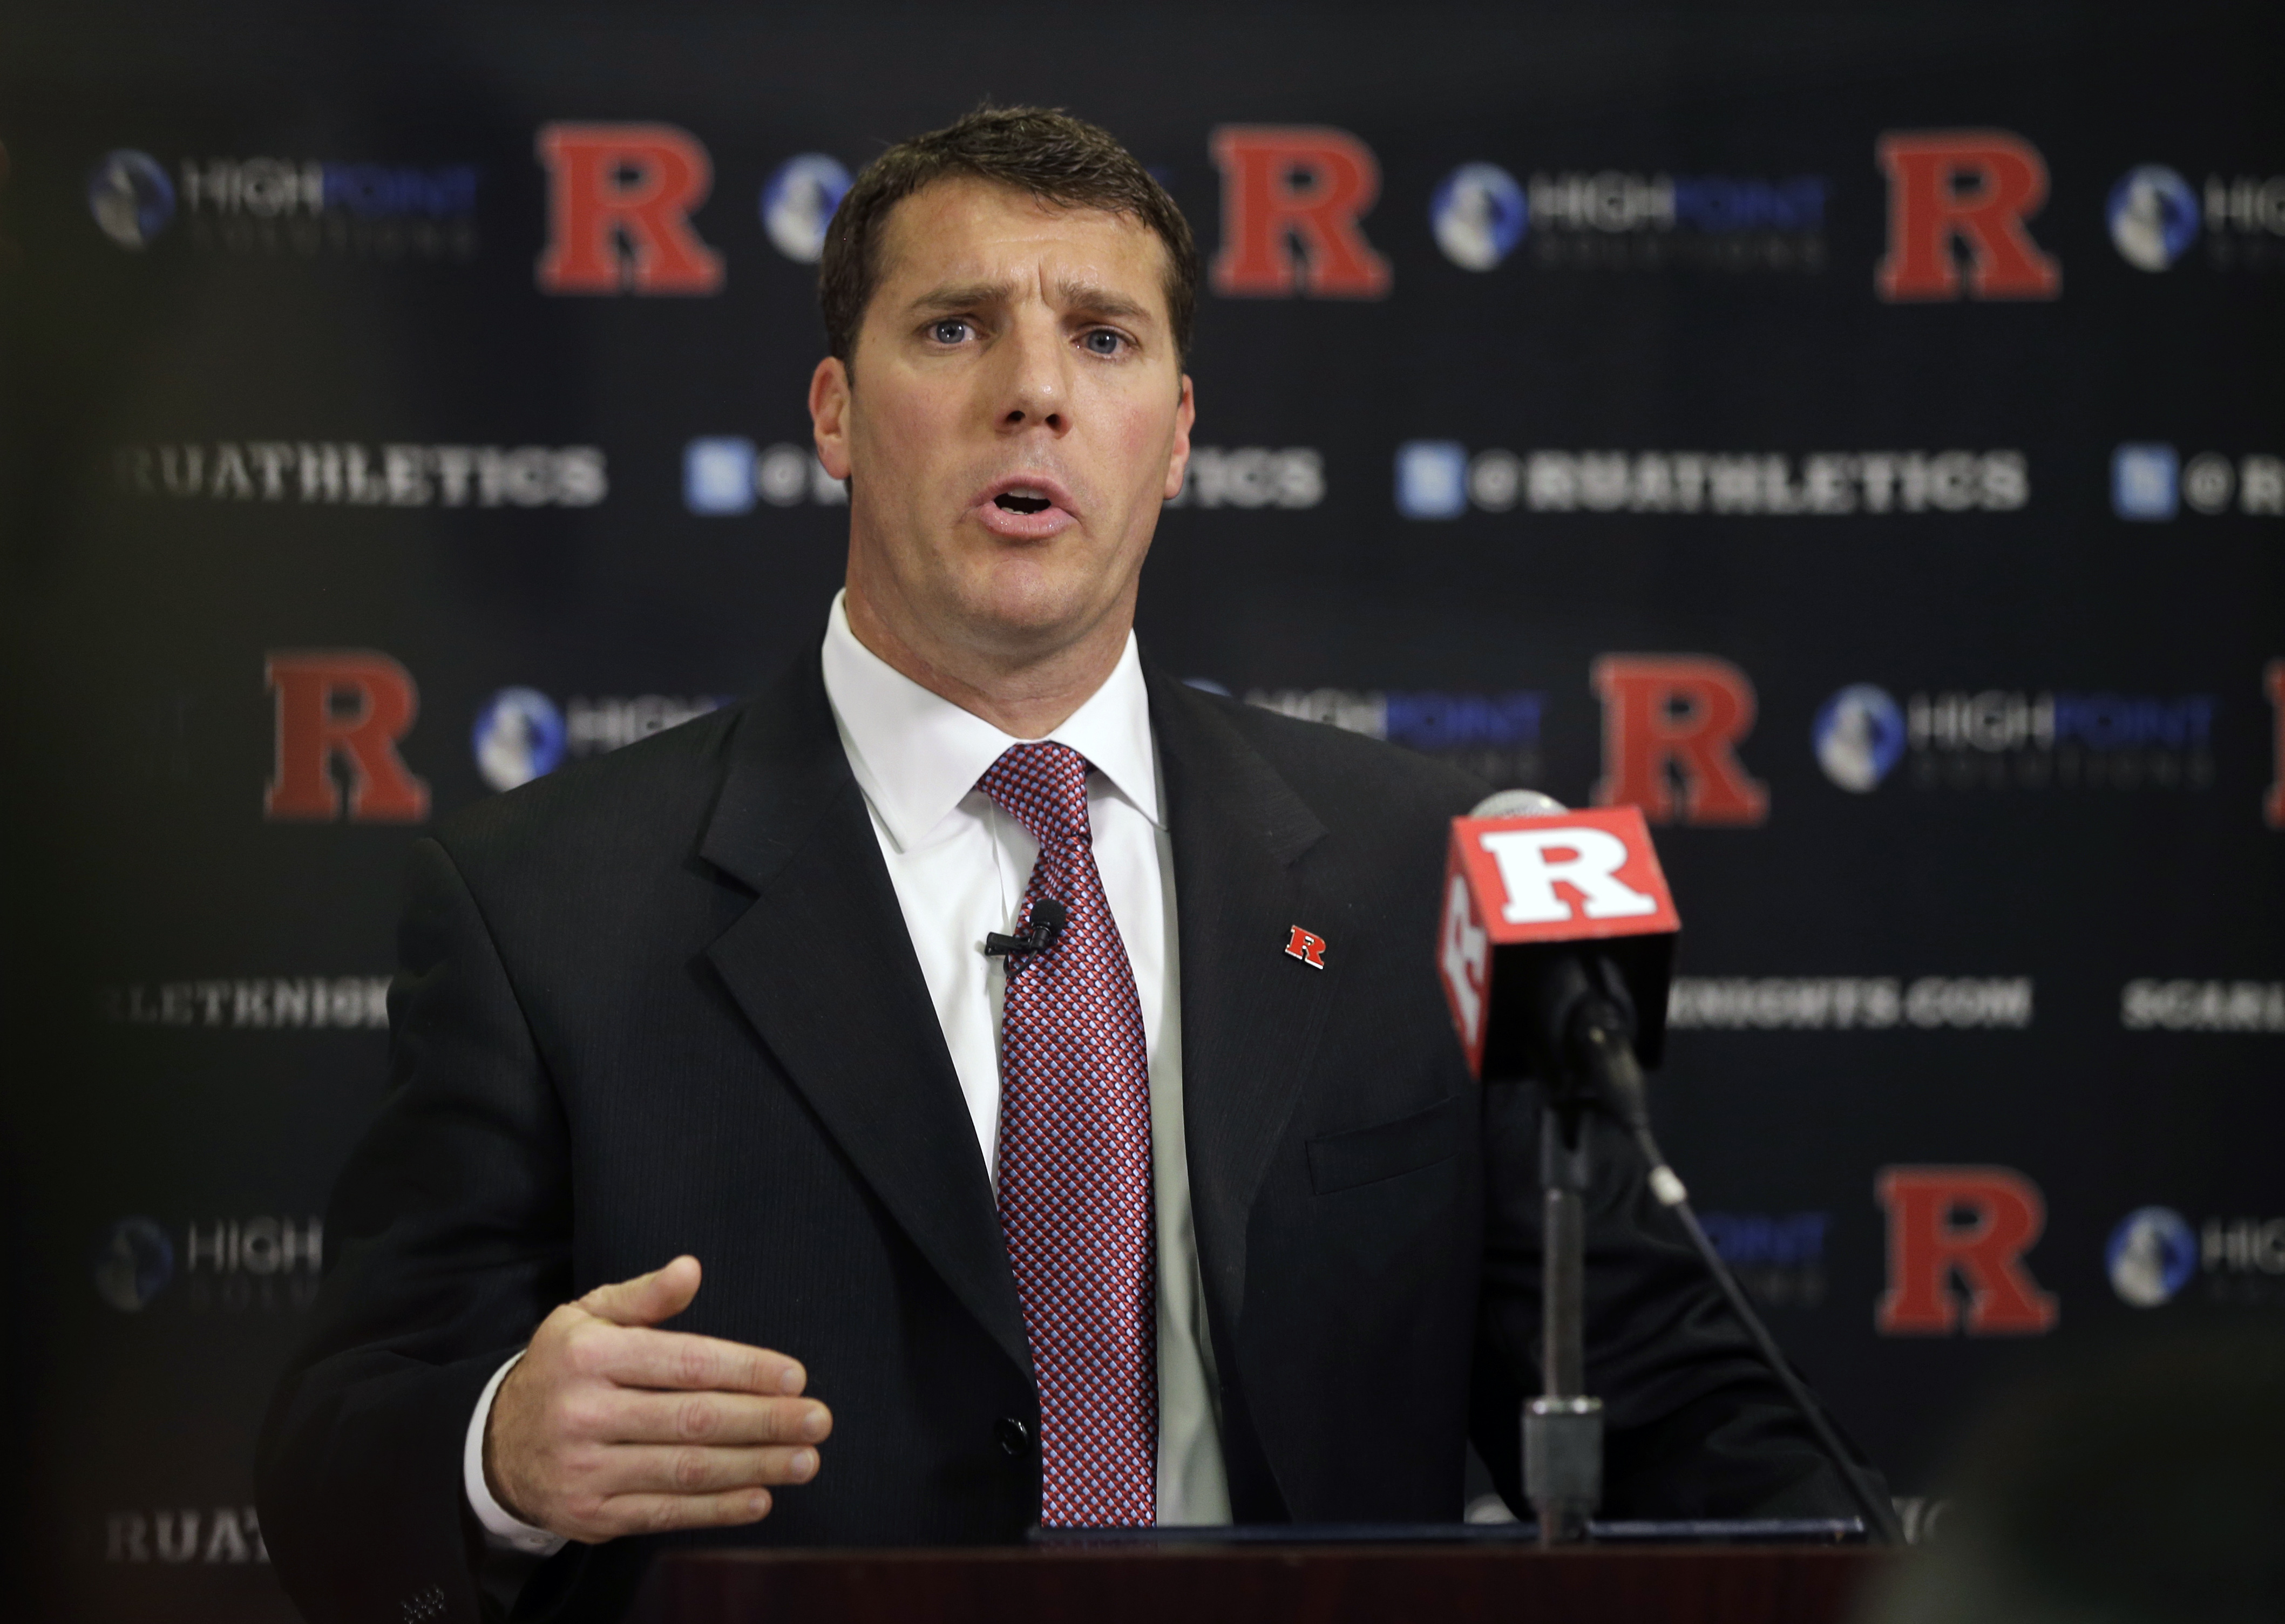 Chris Ash addresses a gathering after he was announced new NCAA college football coach for Rutgers,  Monday, Dec. 7, 2015, in Piscataway, N.J. Athletic director Julie Hermann and football coach Kyle Flood were fired Sunday, Nov. 29, 2015. (AP Photo/Mel Ev